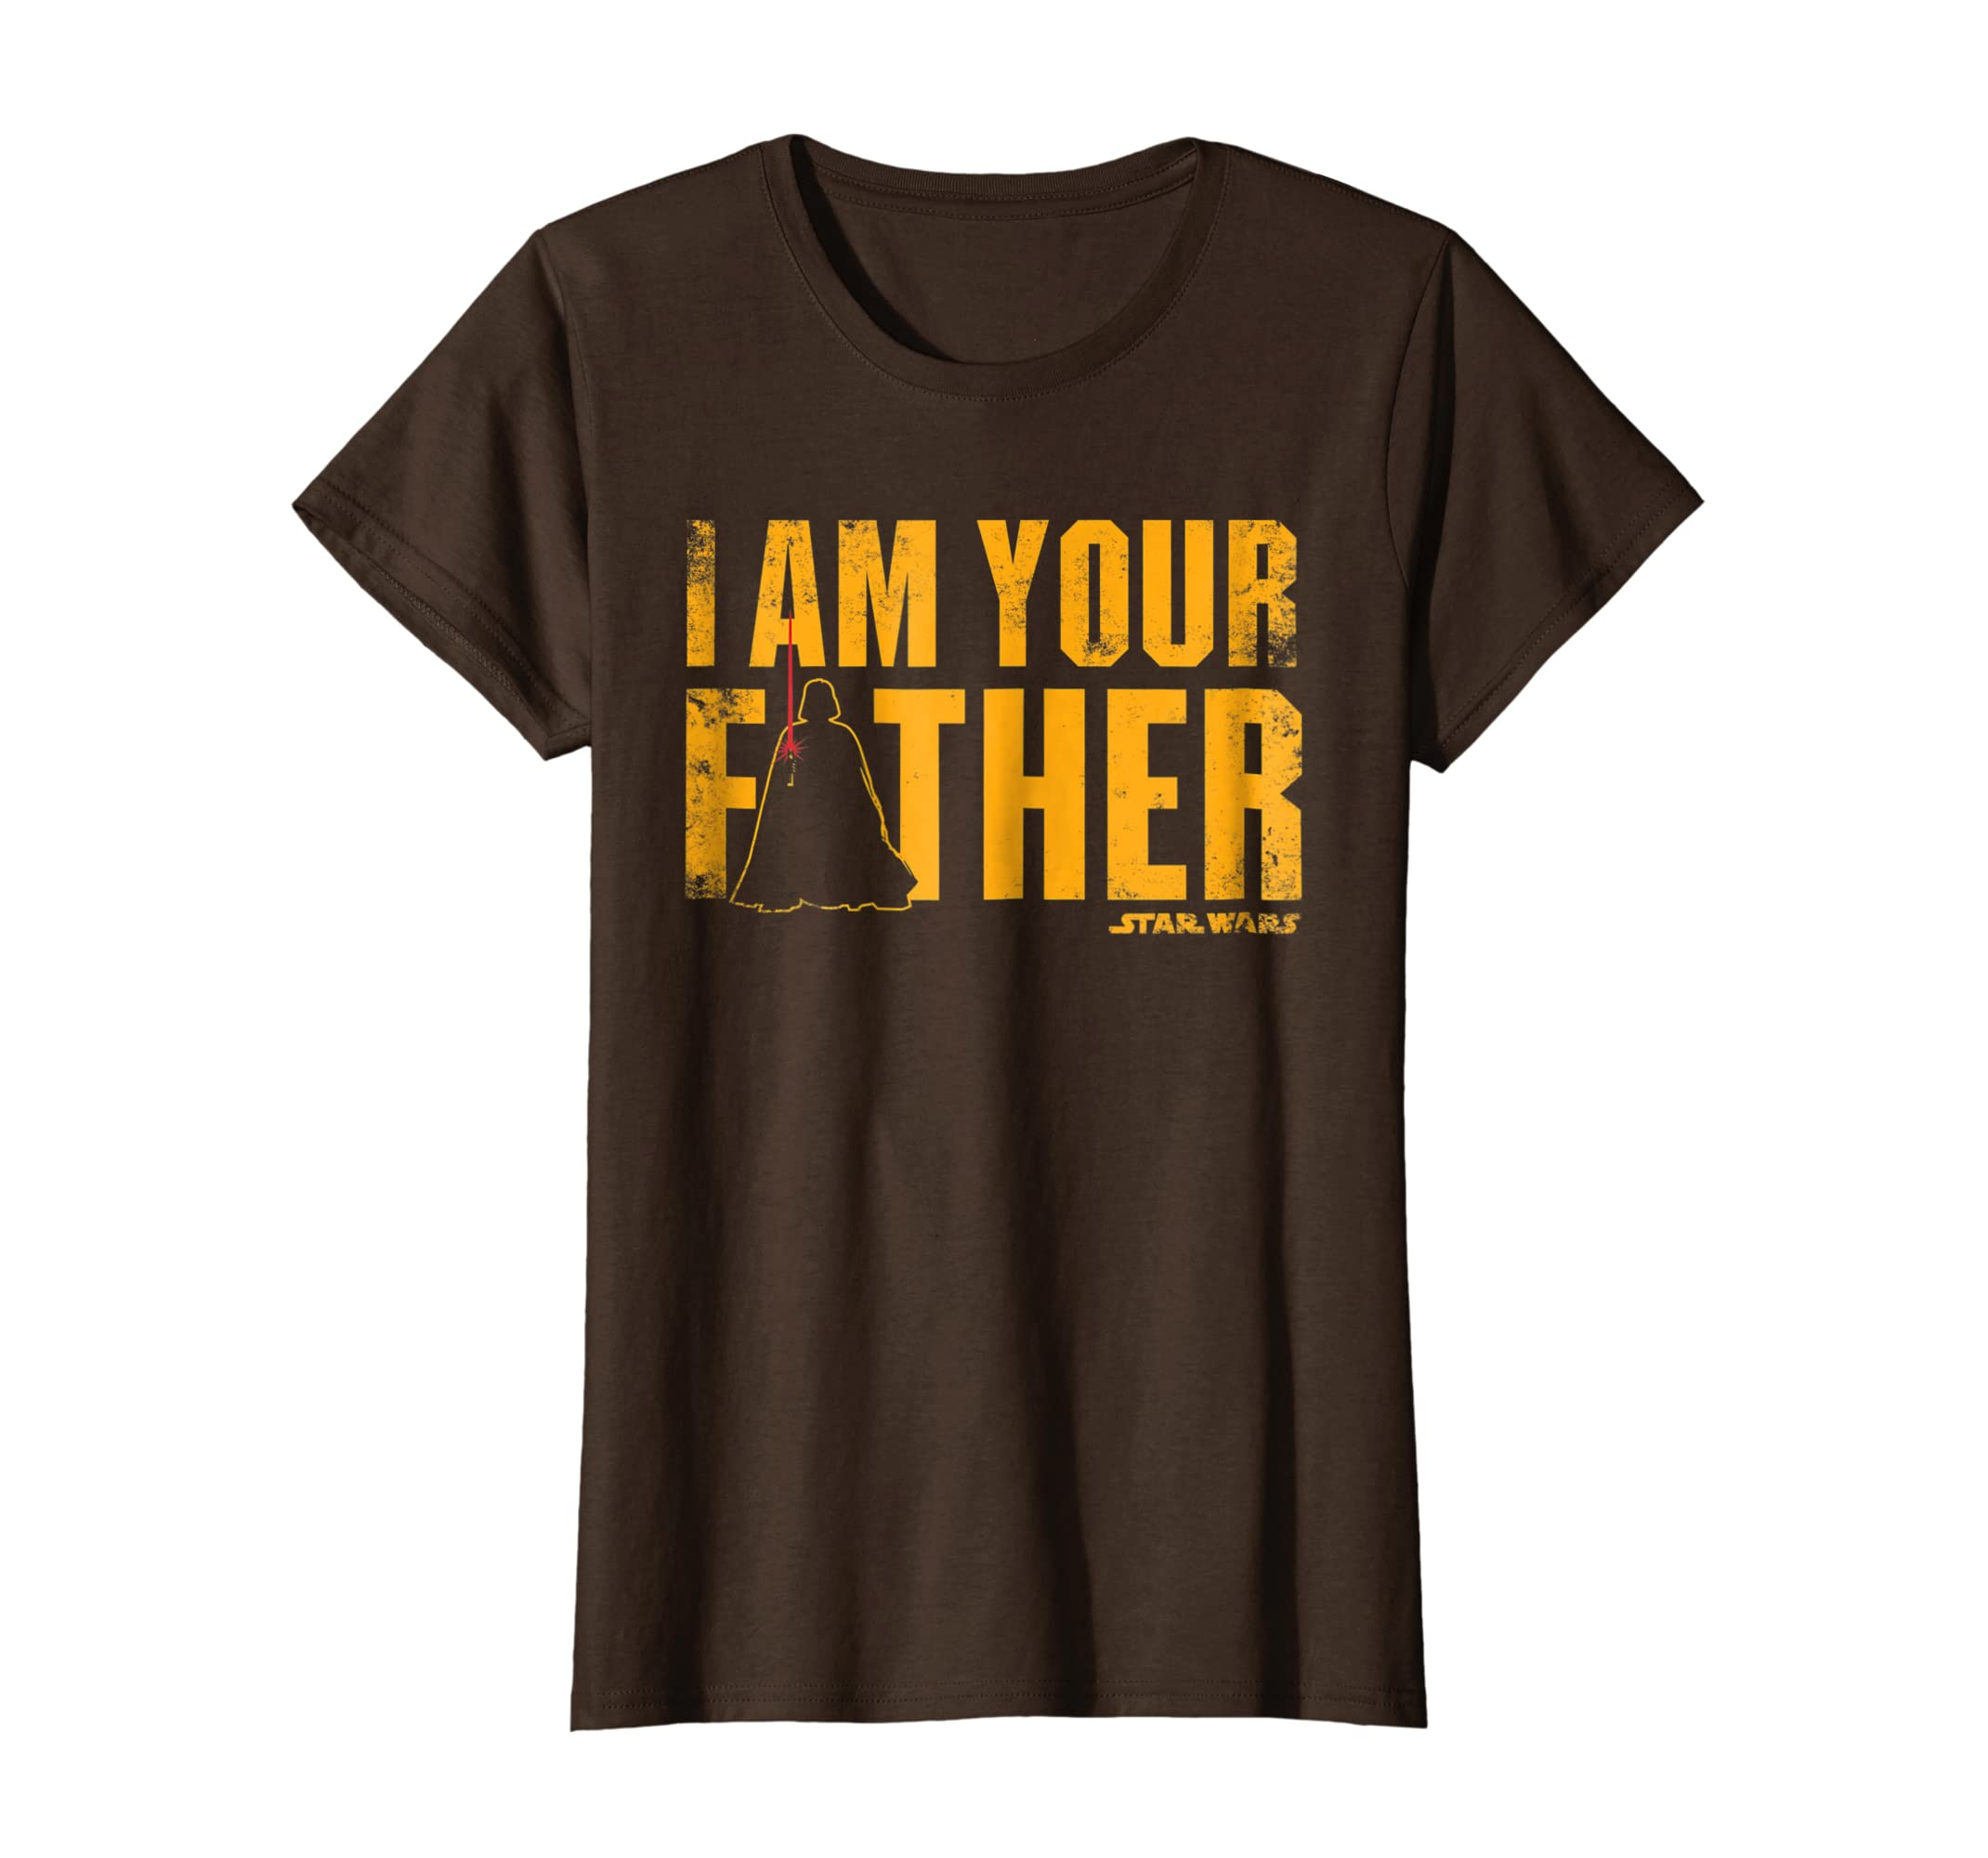 663d80c2 Amazon.com: Star Wars Vader I Am Your Father Silhouette Graphic T-Shirt:  Clothing